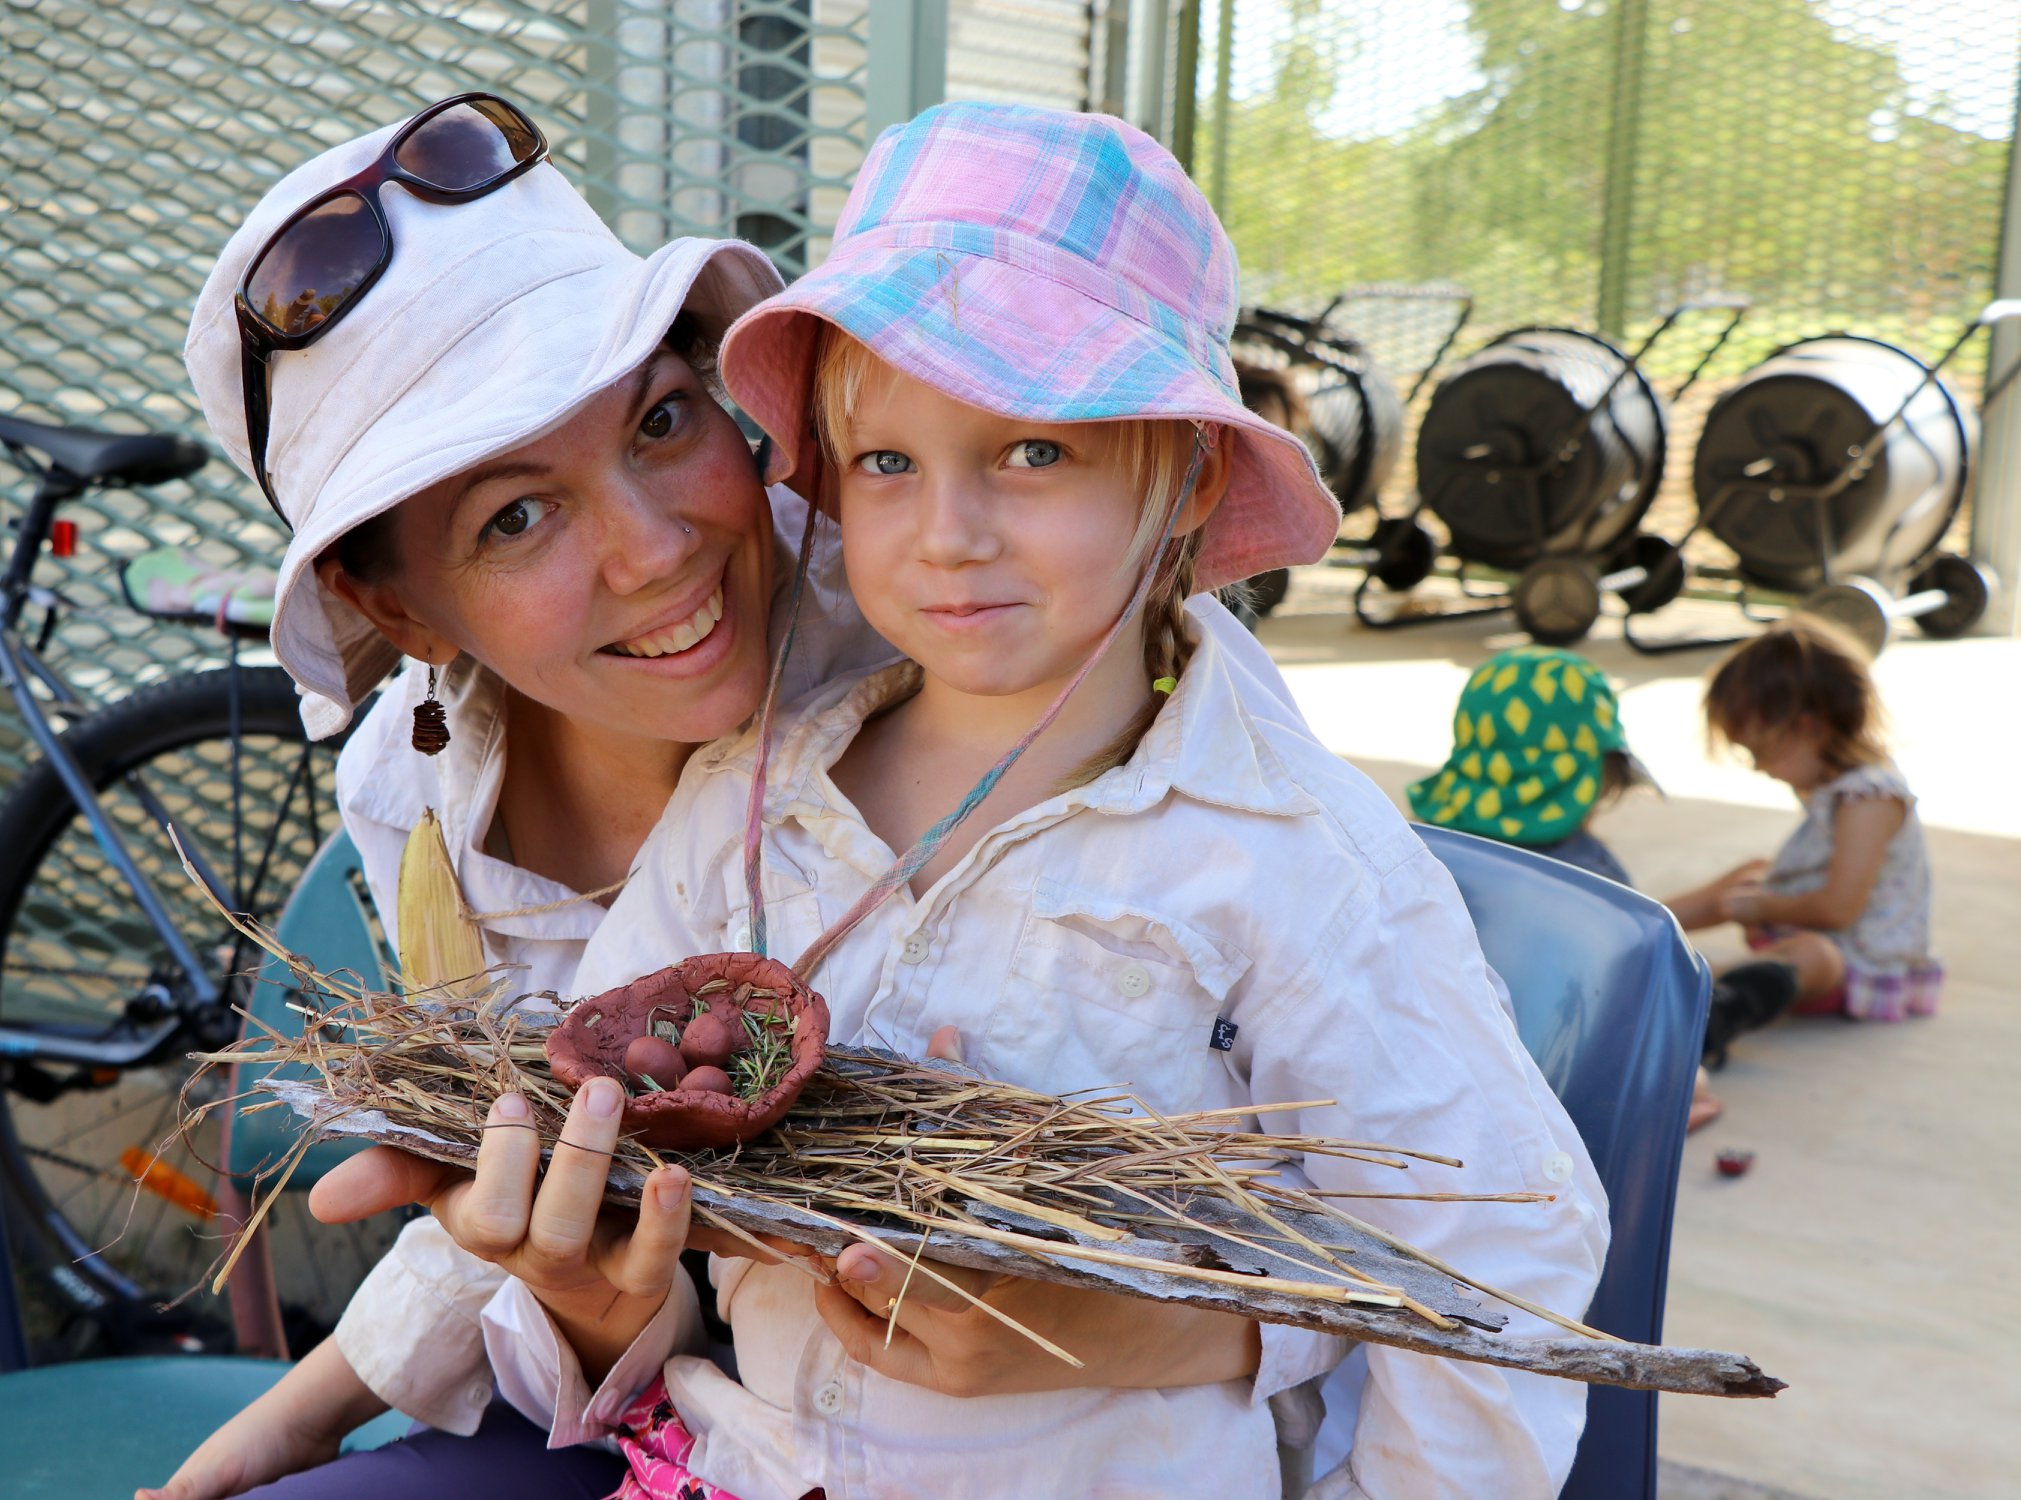 Gardening, Art and Play for Kids